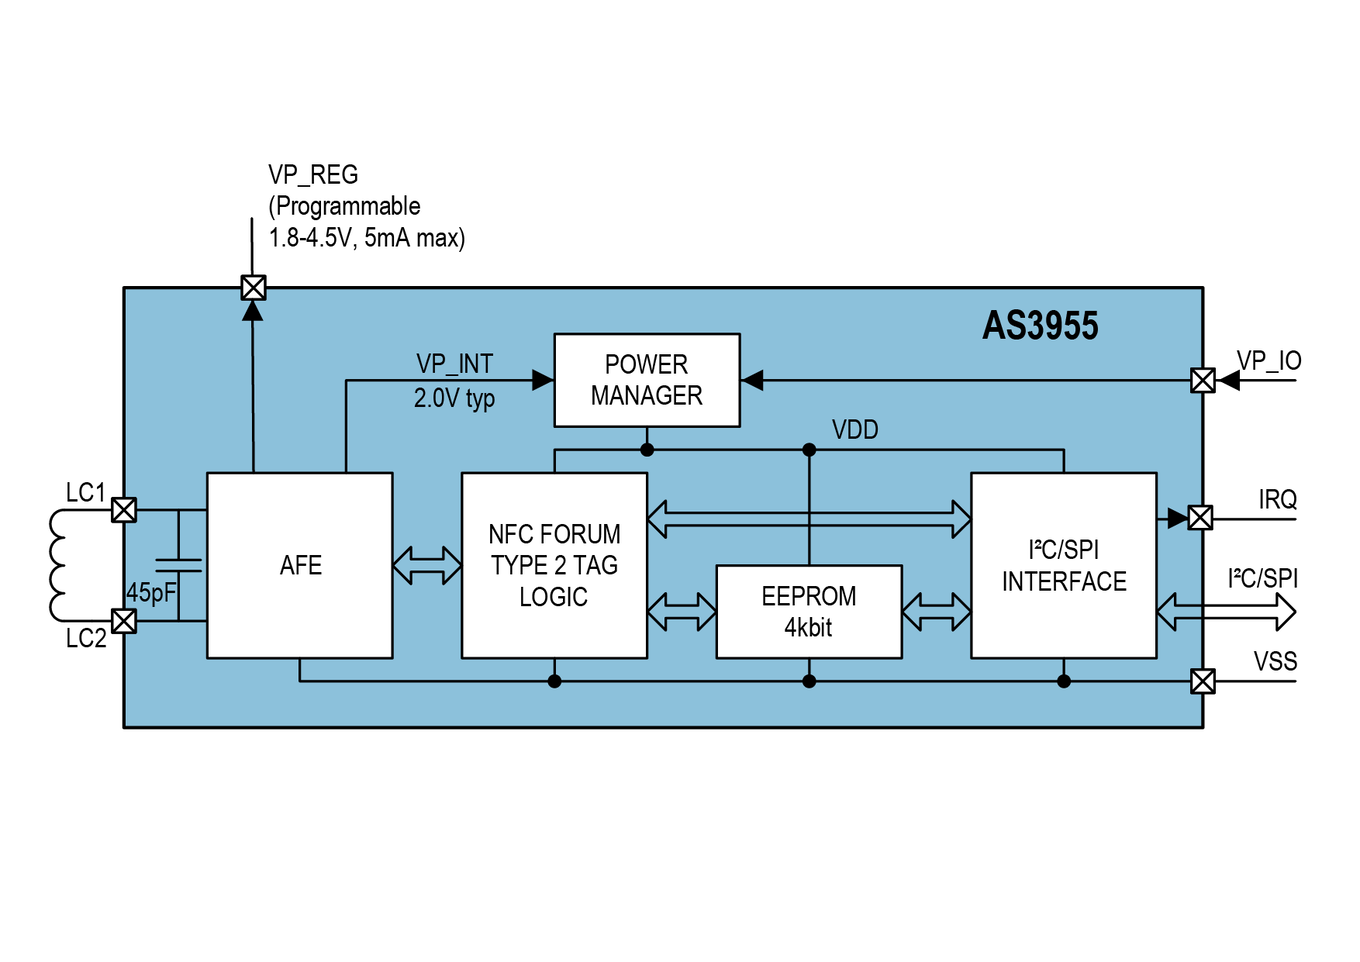 next-generation NFC interface tag IC with advanced data and